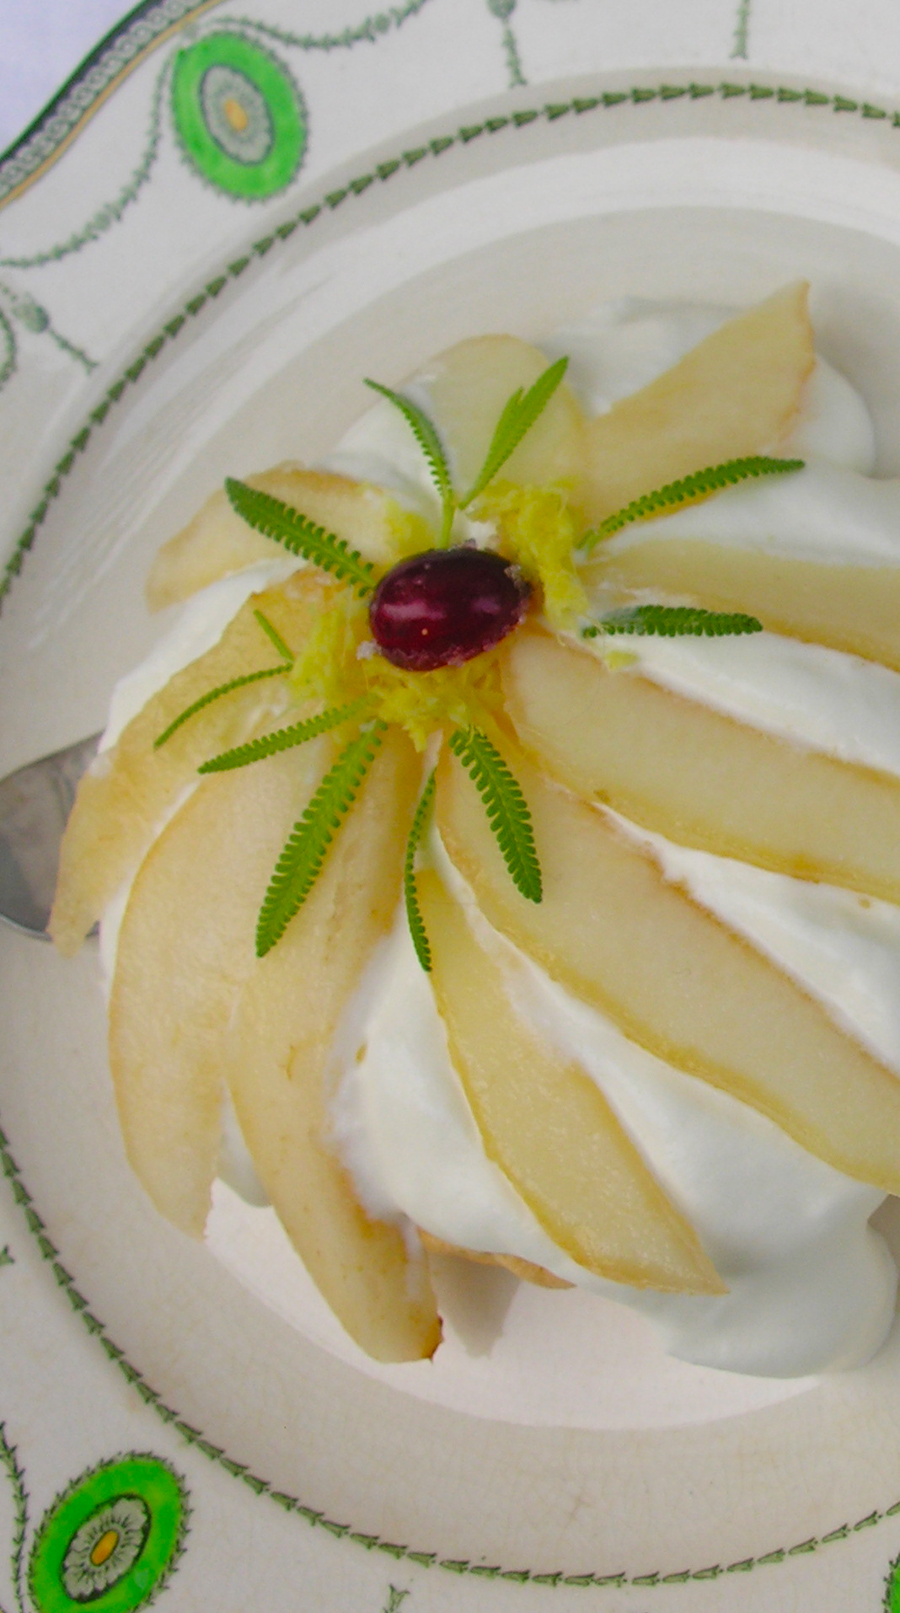 Pear pavlova with undertones of lavender and ginger